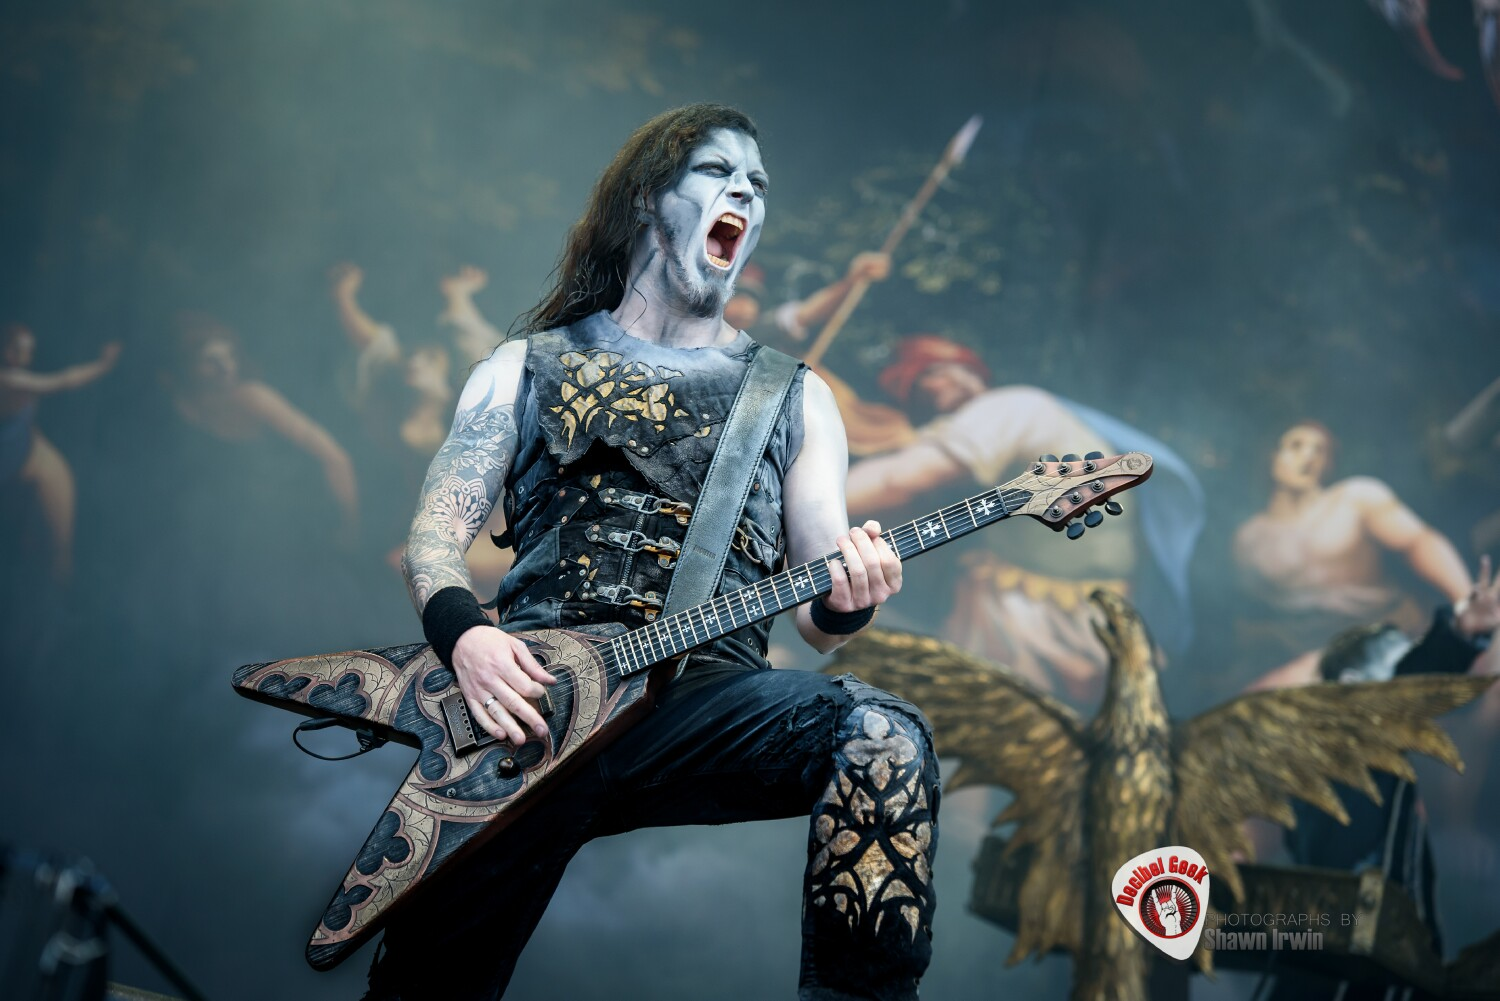 Powerwolf #31-SRF 2019-Shawn Irwin